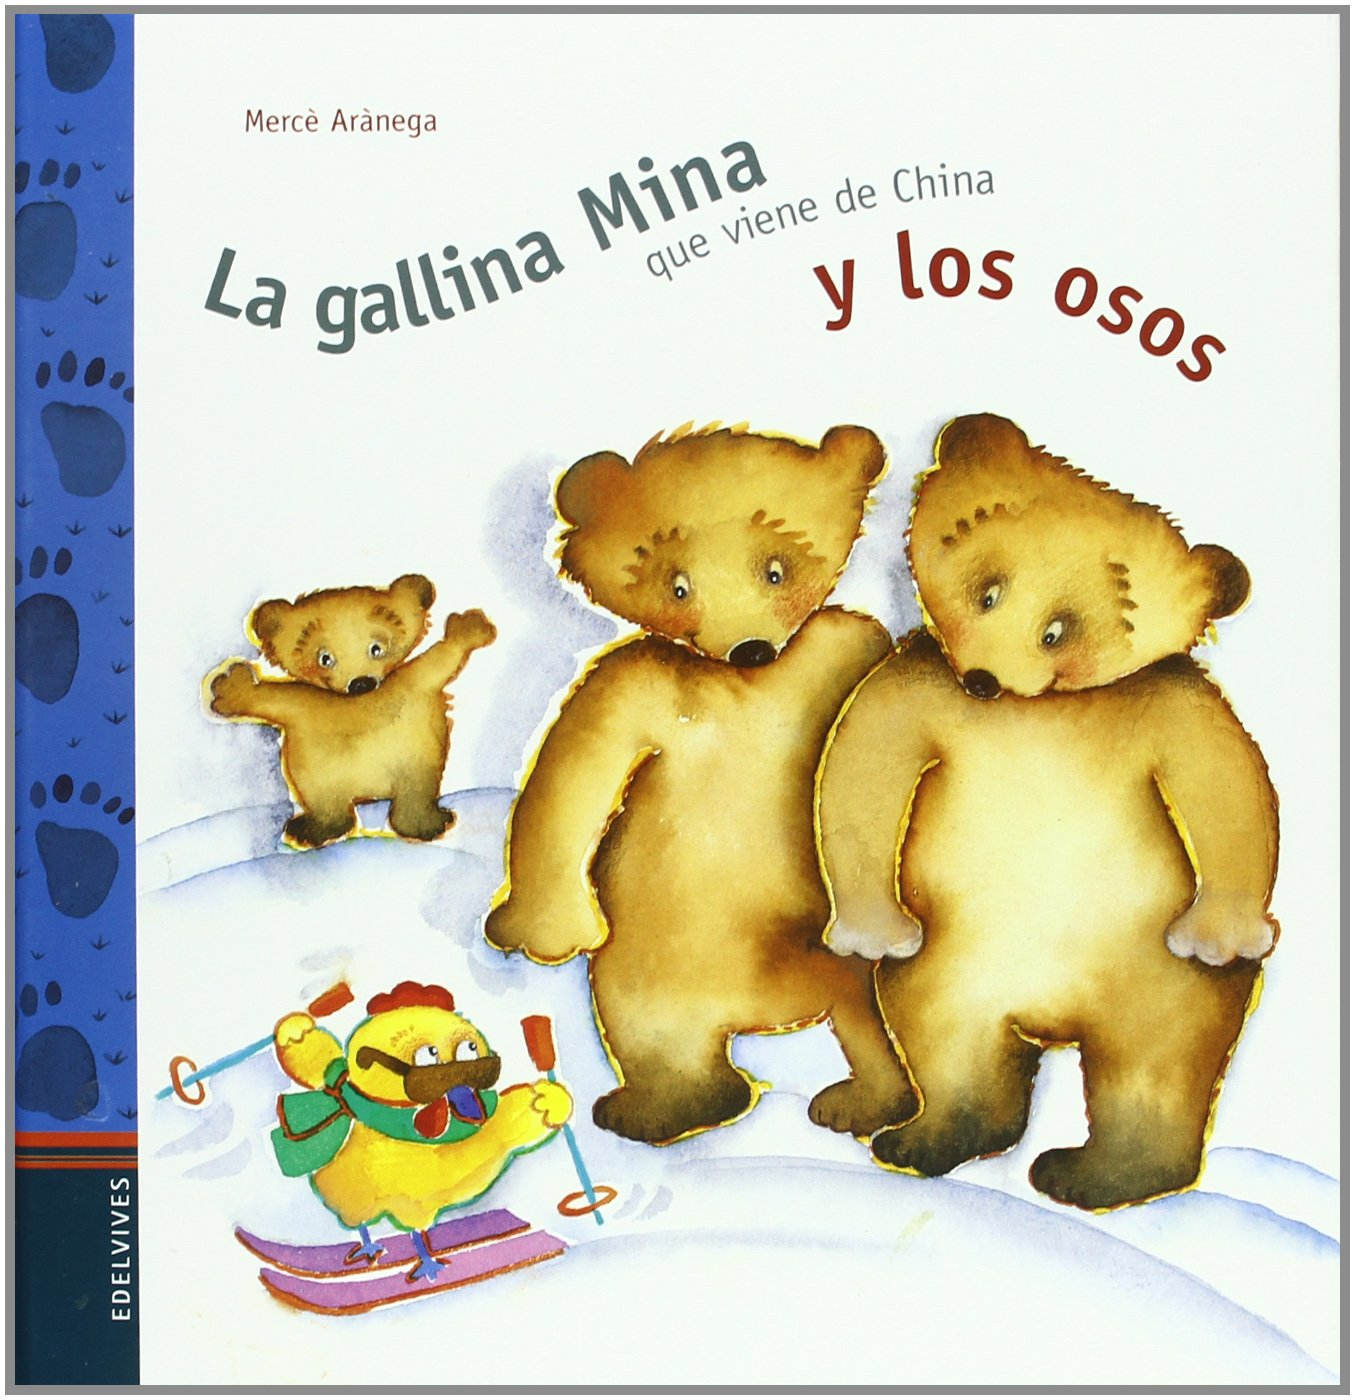 La gallina Mina que viene de China y los osos (Spanish) Hardcover – January 1, 1900